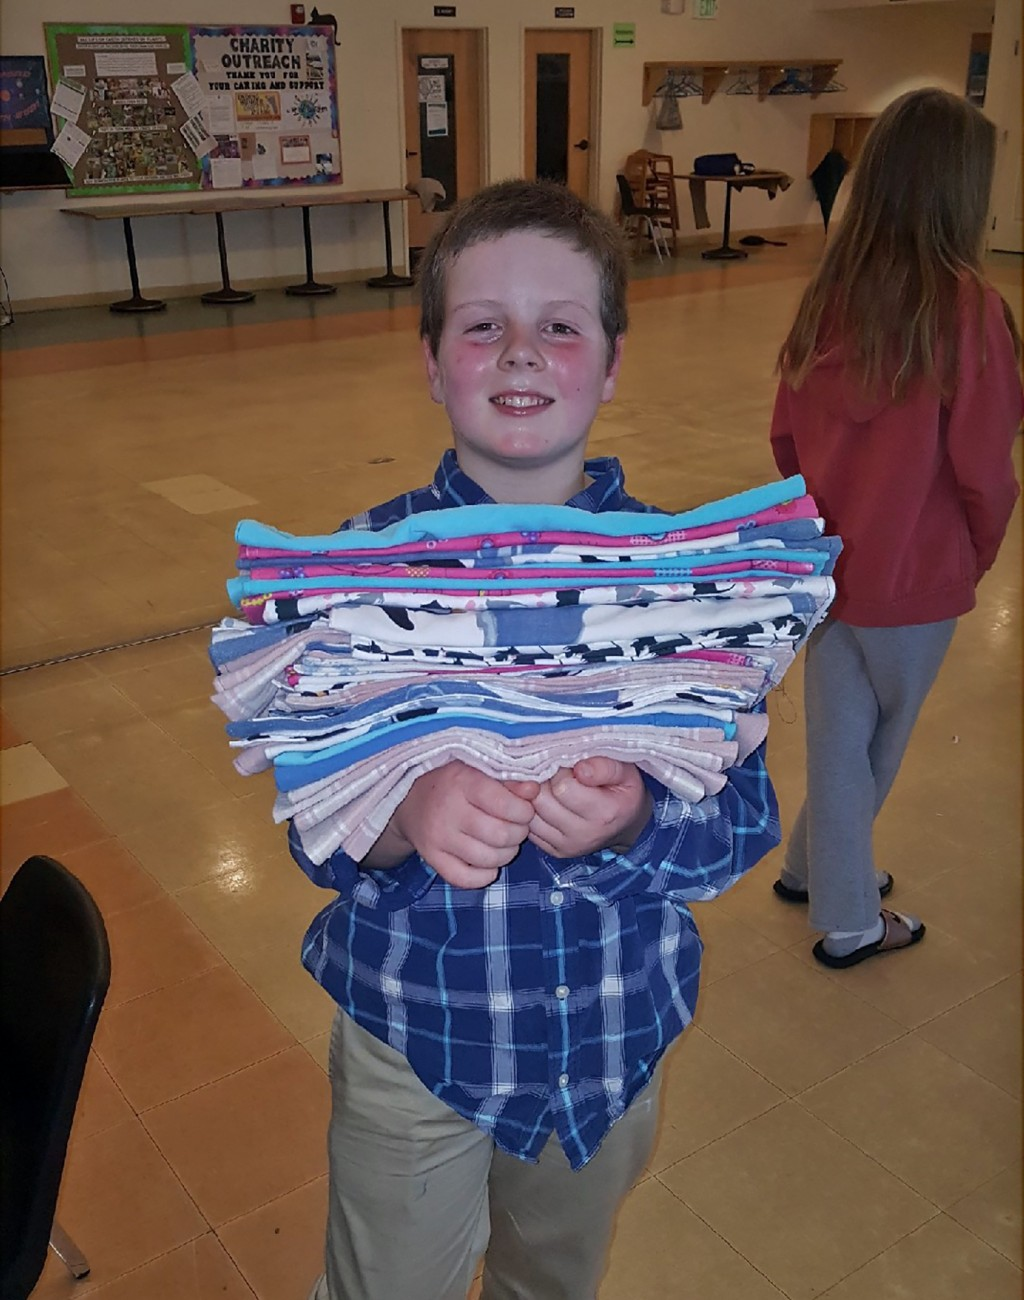 This Jan. 12, 2020 photo provided by Meg Hydock shows Gibson Griffith, 10, holding a stack of fabric crate liners he and others sewed to send to wildl...